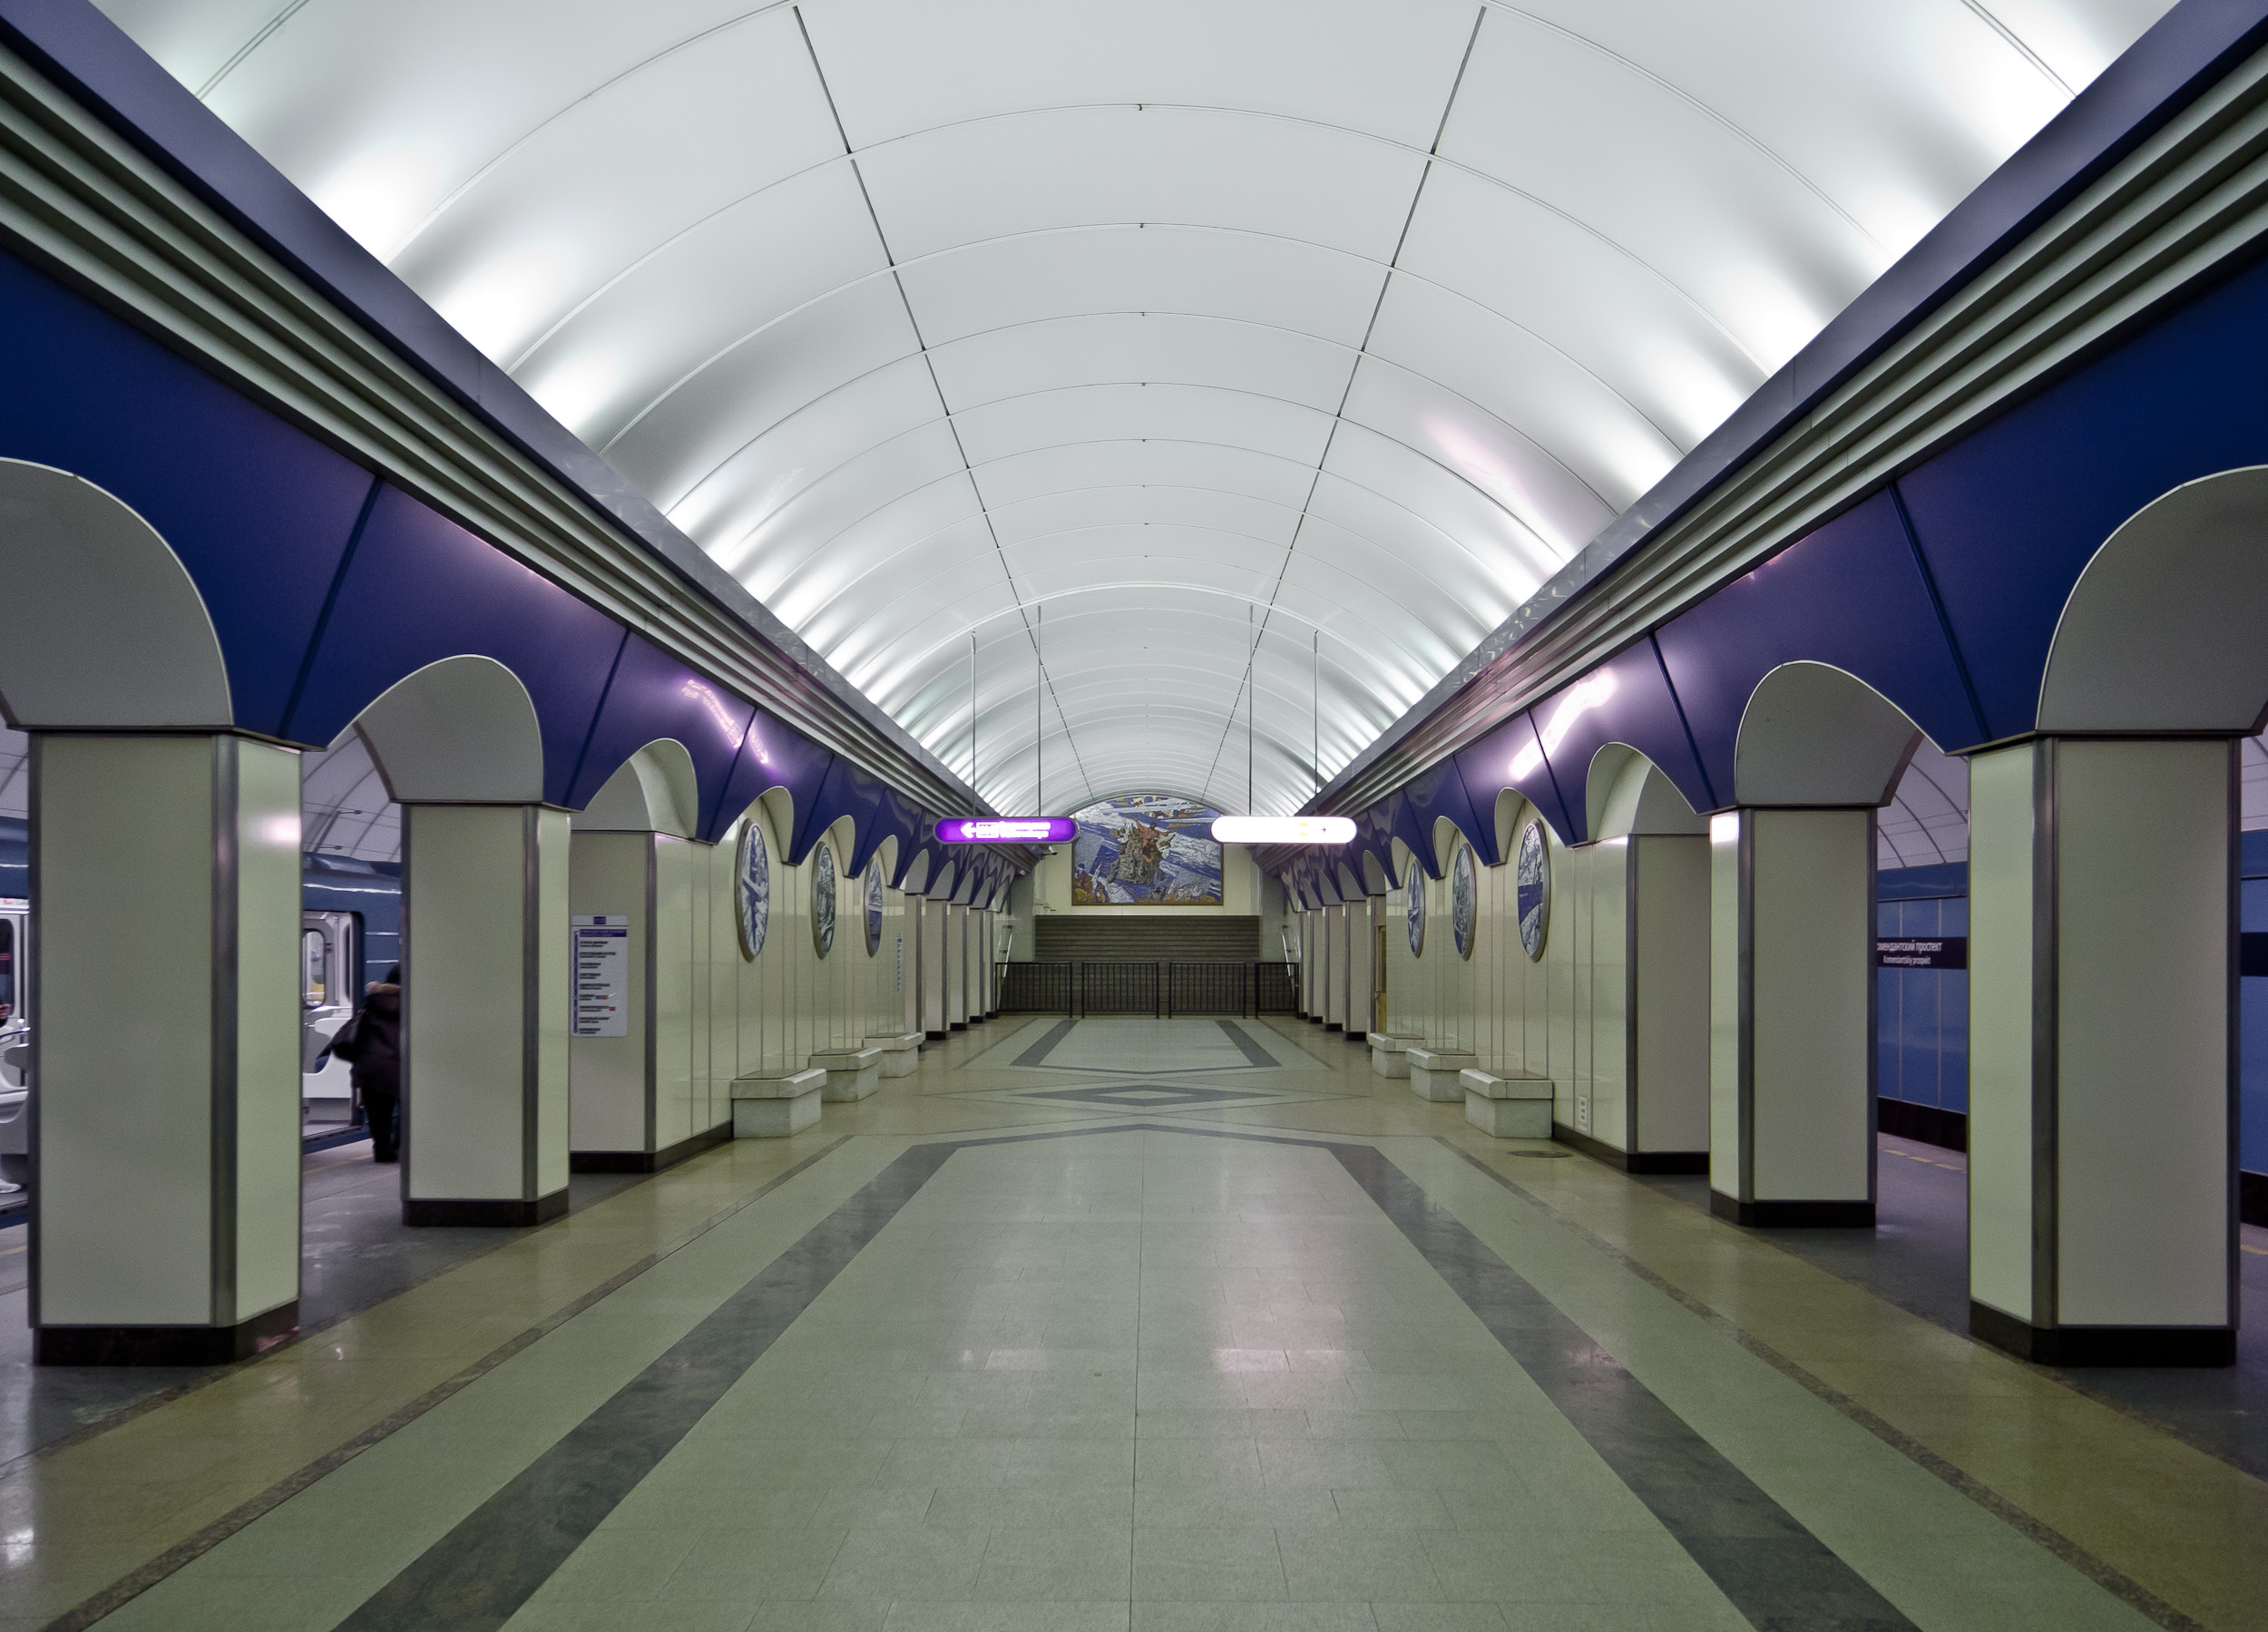 Deepest Metro Station In The World, St Petersburg